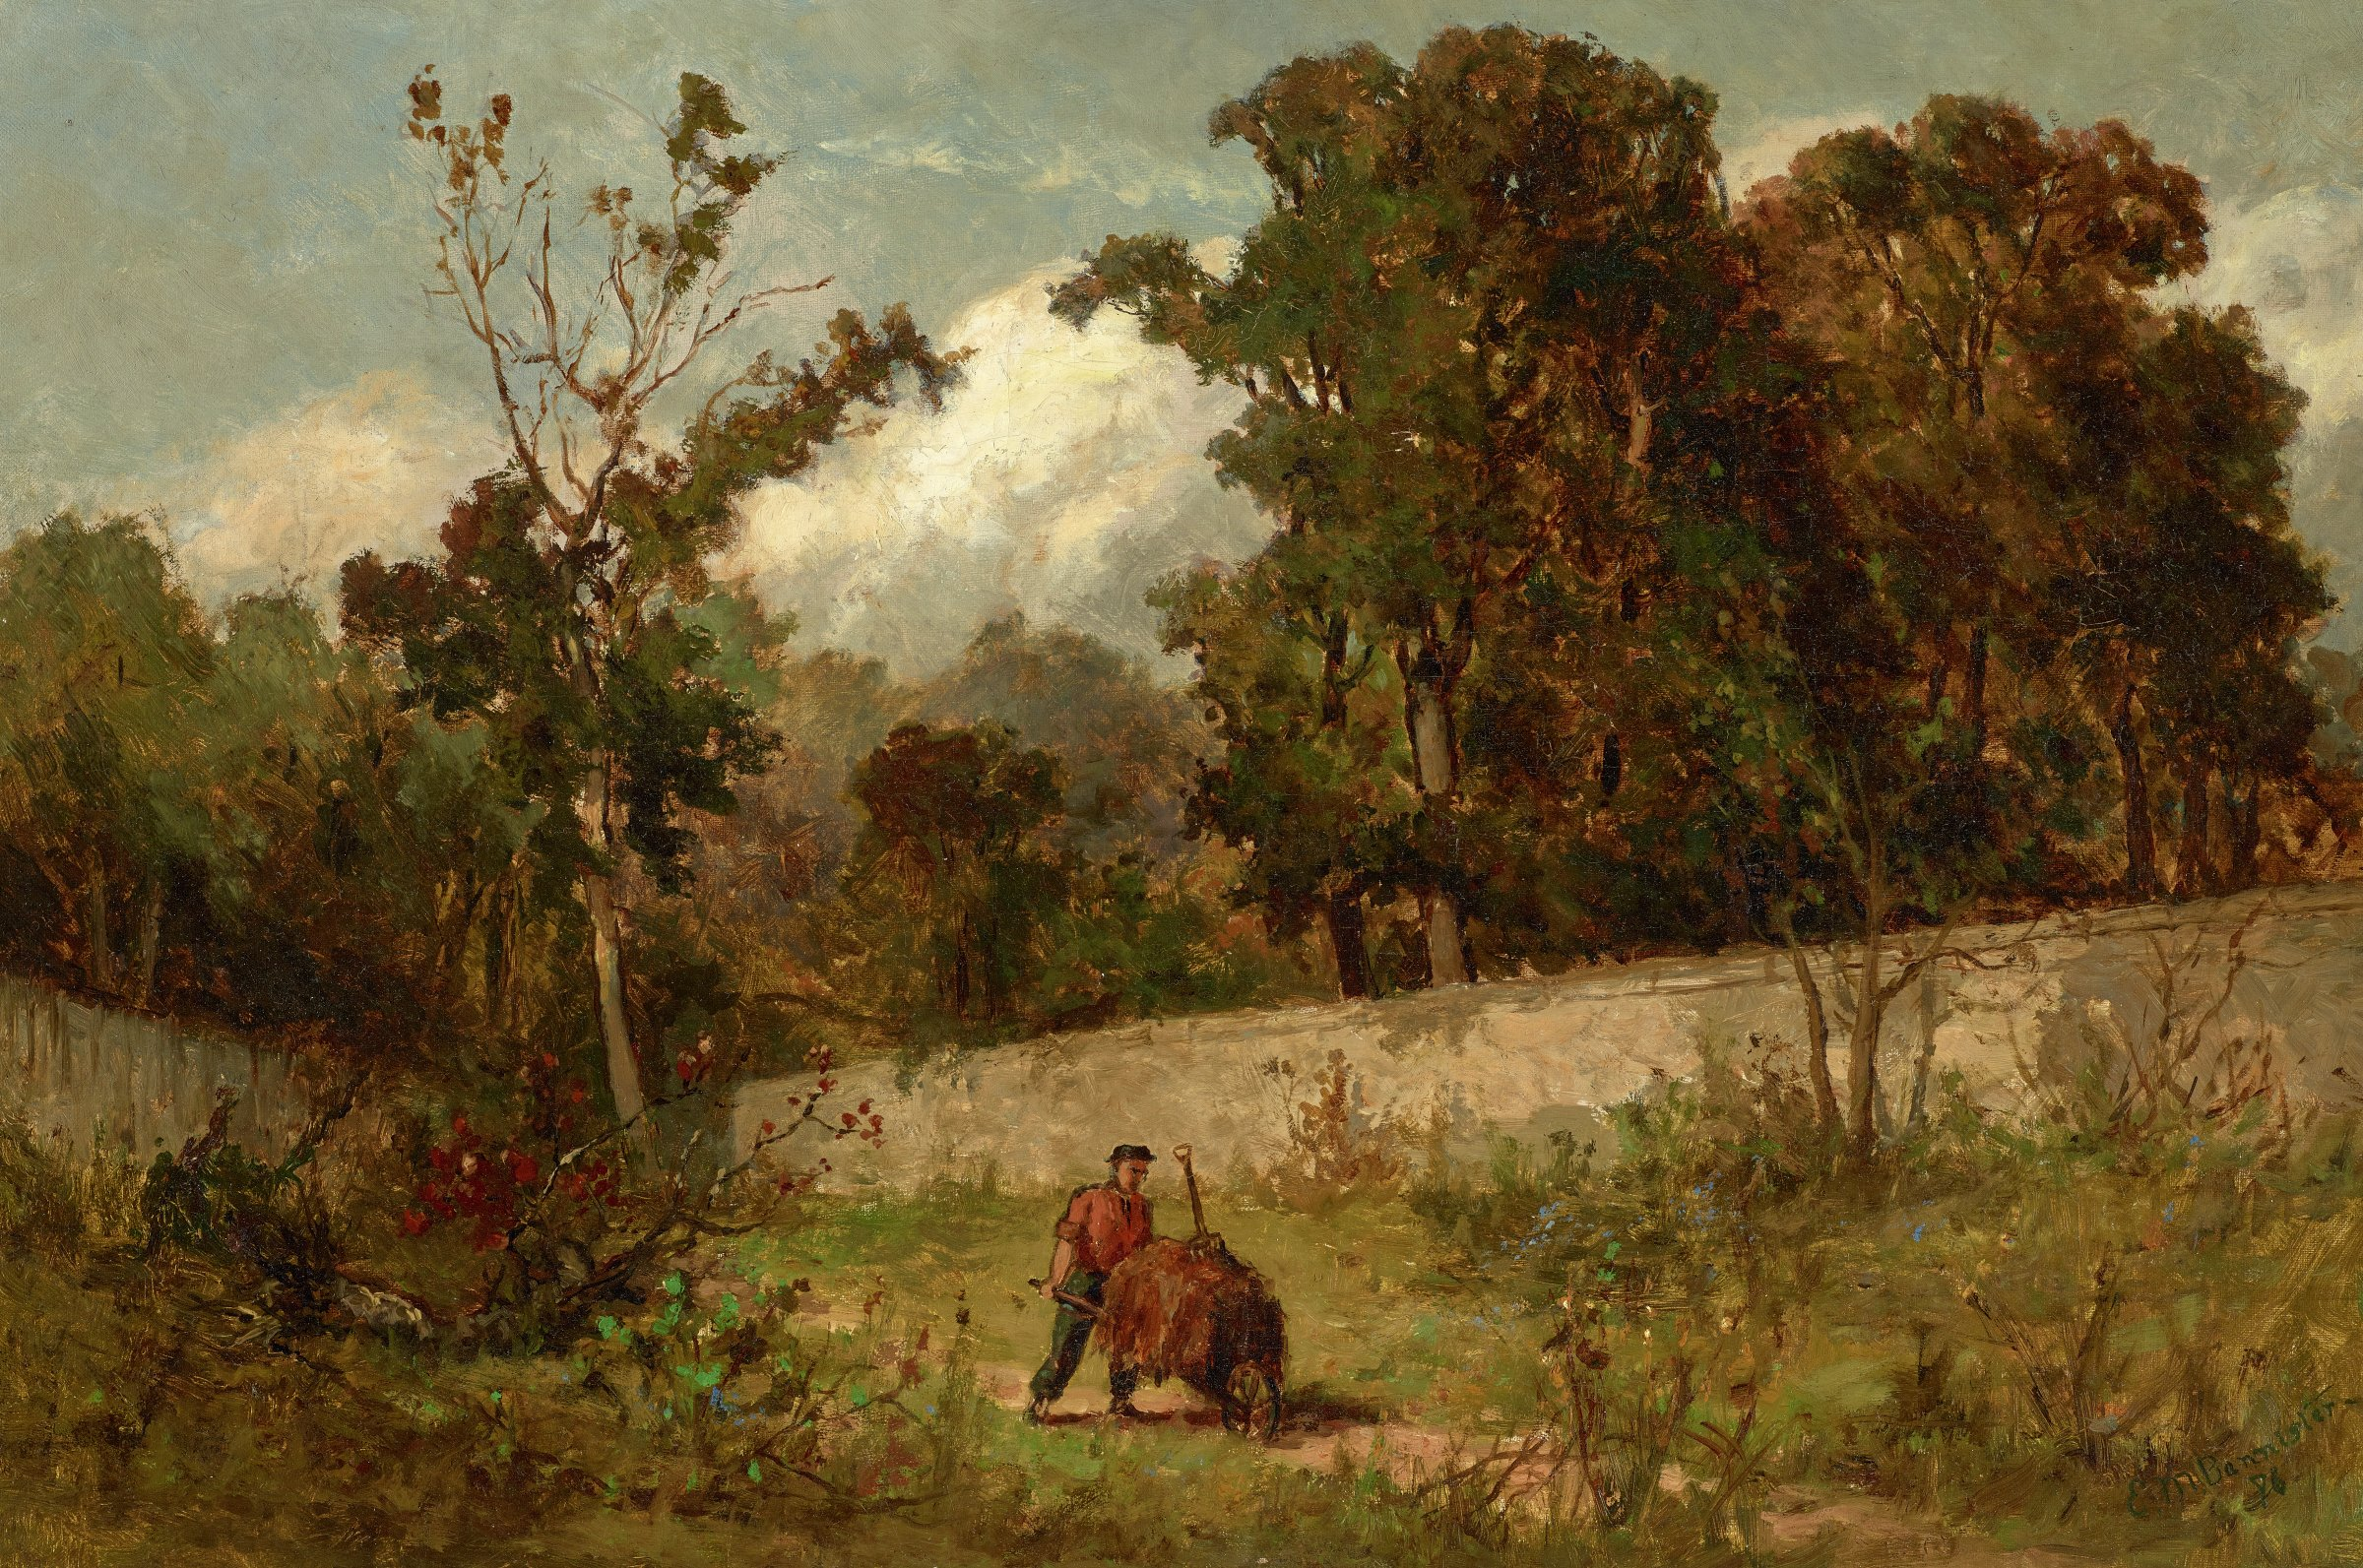 In the center foreground, a man wearing a hat, red shirt, and blue trousers pushes a wheelbarrow loaded with hay and a pitchfork.  The solitary figure walks along a path lined with grass and bushes.  A stone wall is visible in the middleground, with tall, full deciduous trees populating the background behind the wall.  Typical of Bannister's work, and Barbizon pictures in general, various shades of green and brown comprise the overall palette.